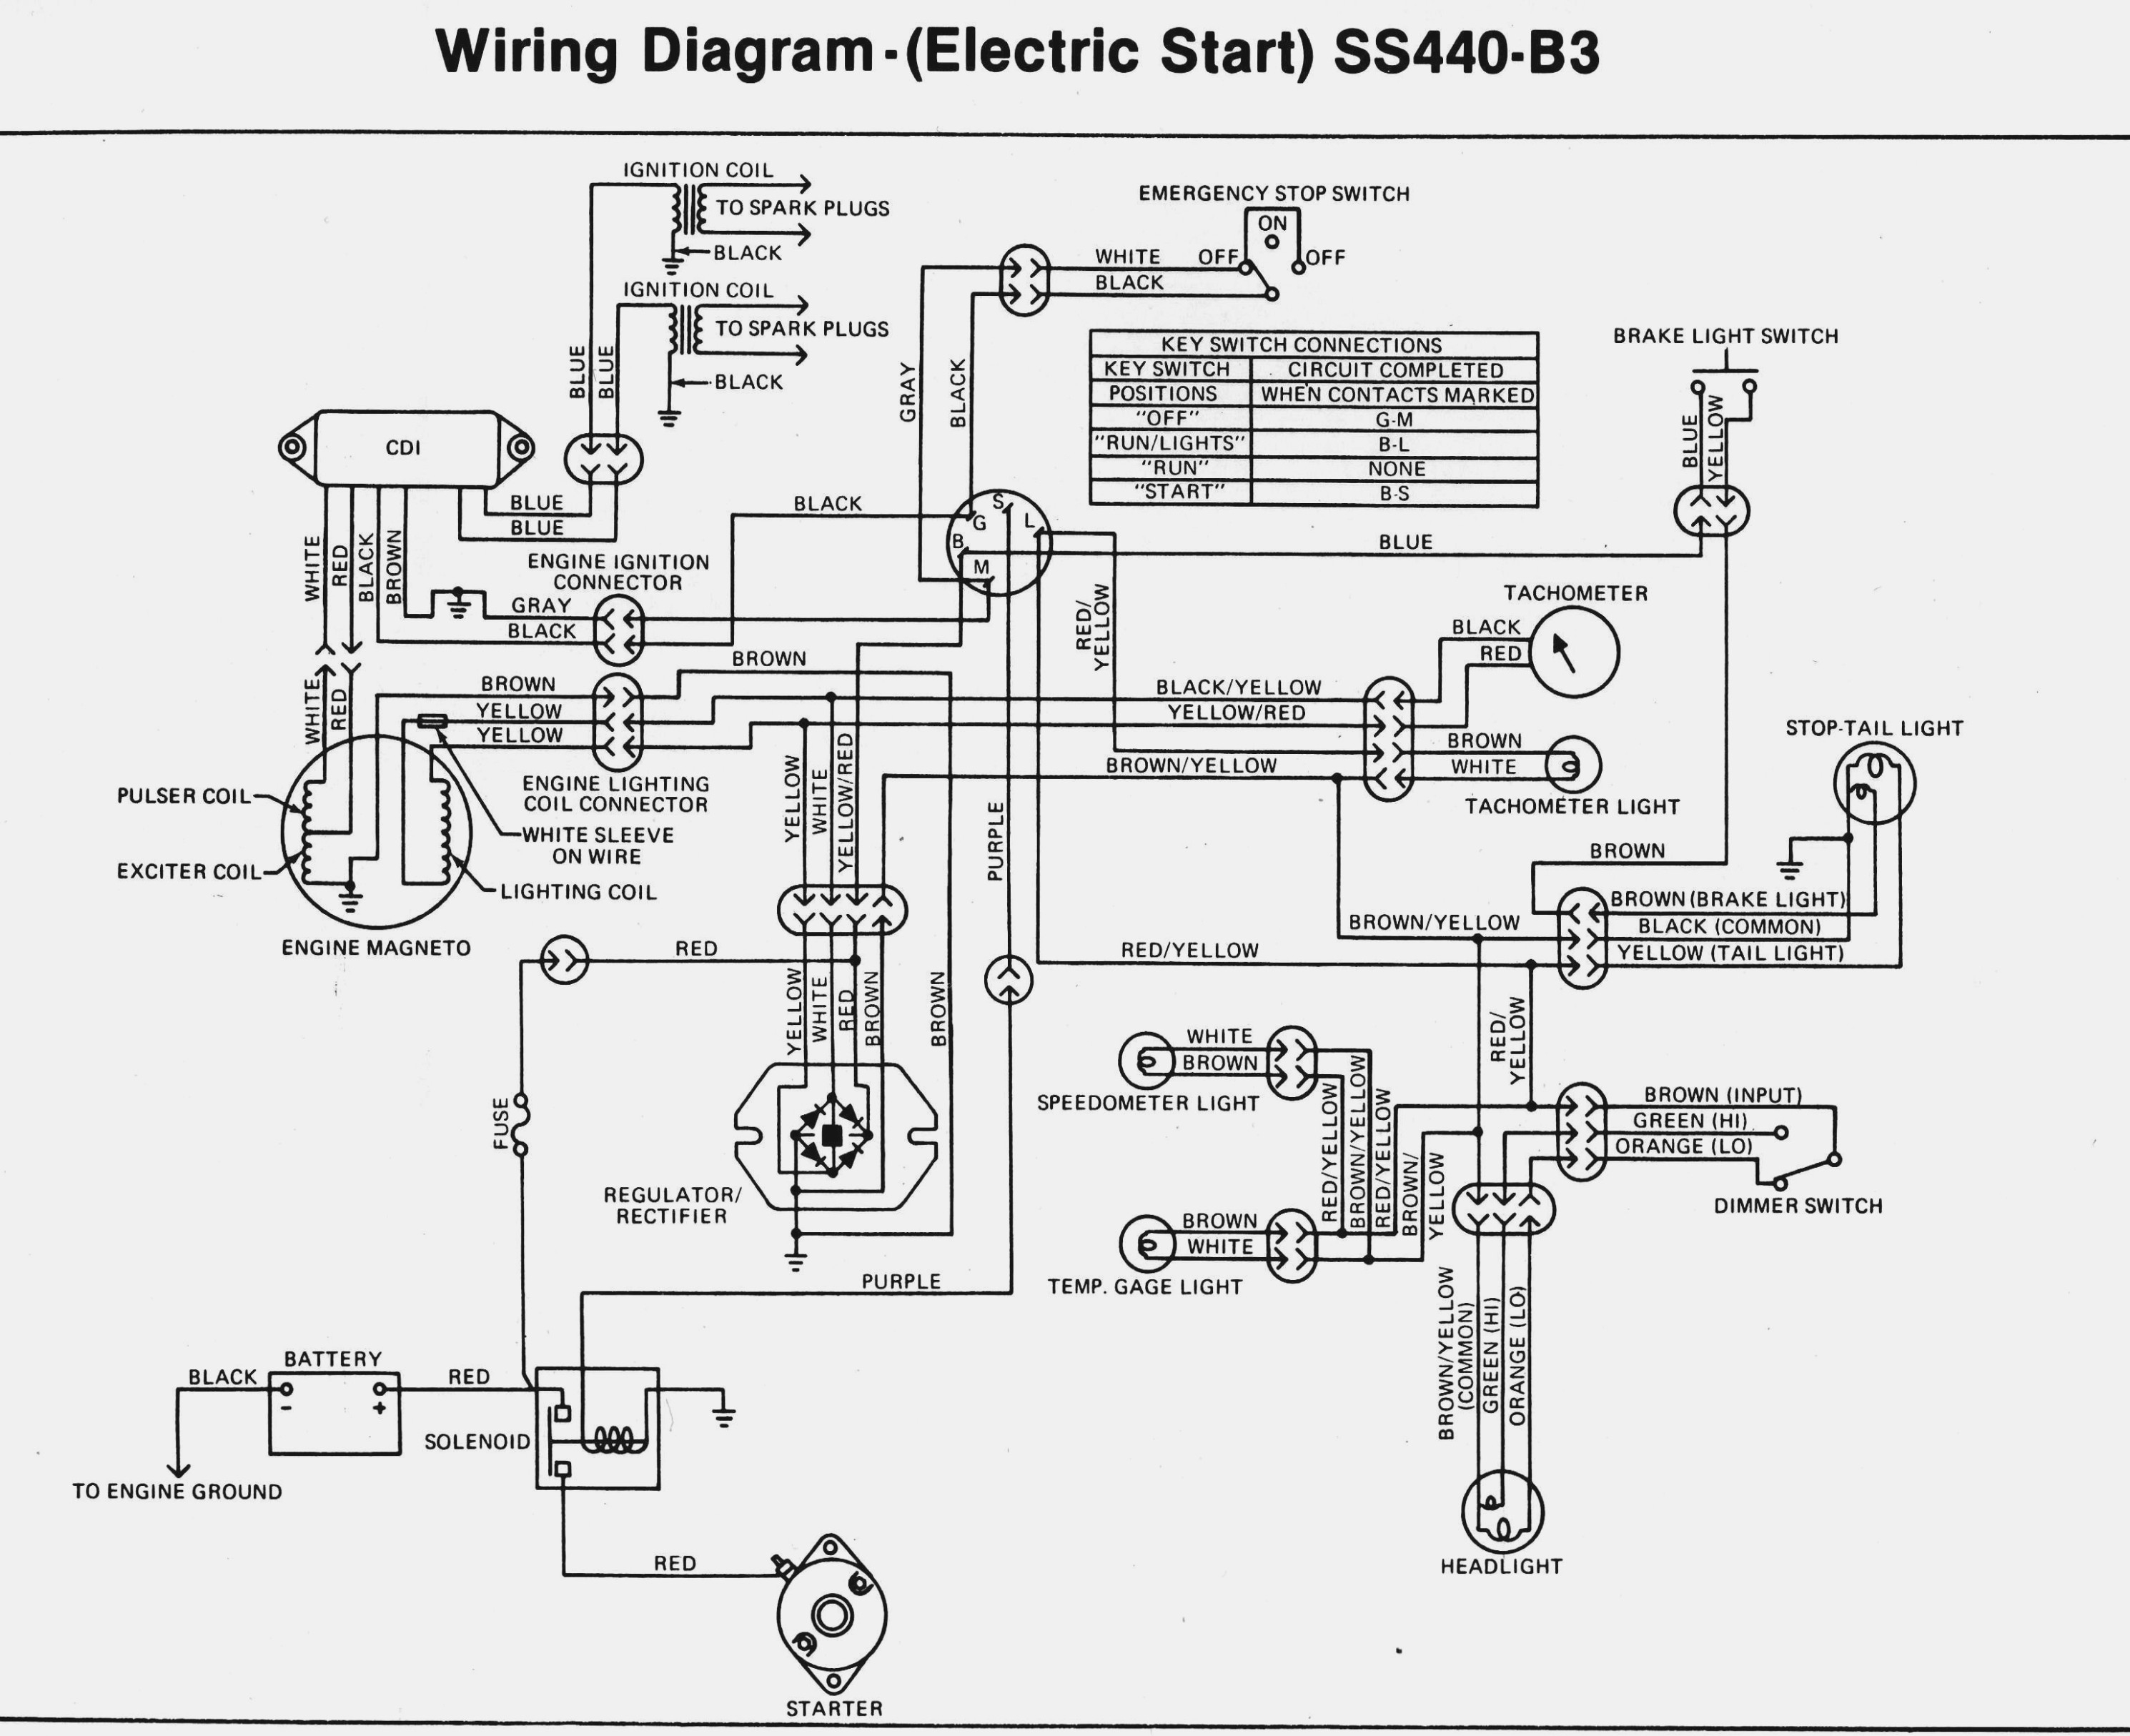 Honda Gx200 Starter Wiring | Wiring Diagram - Honda Gx160 Electric Start Wiring Diagram